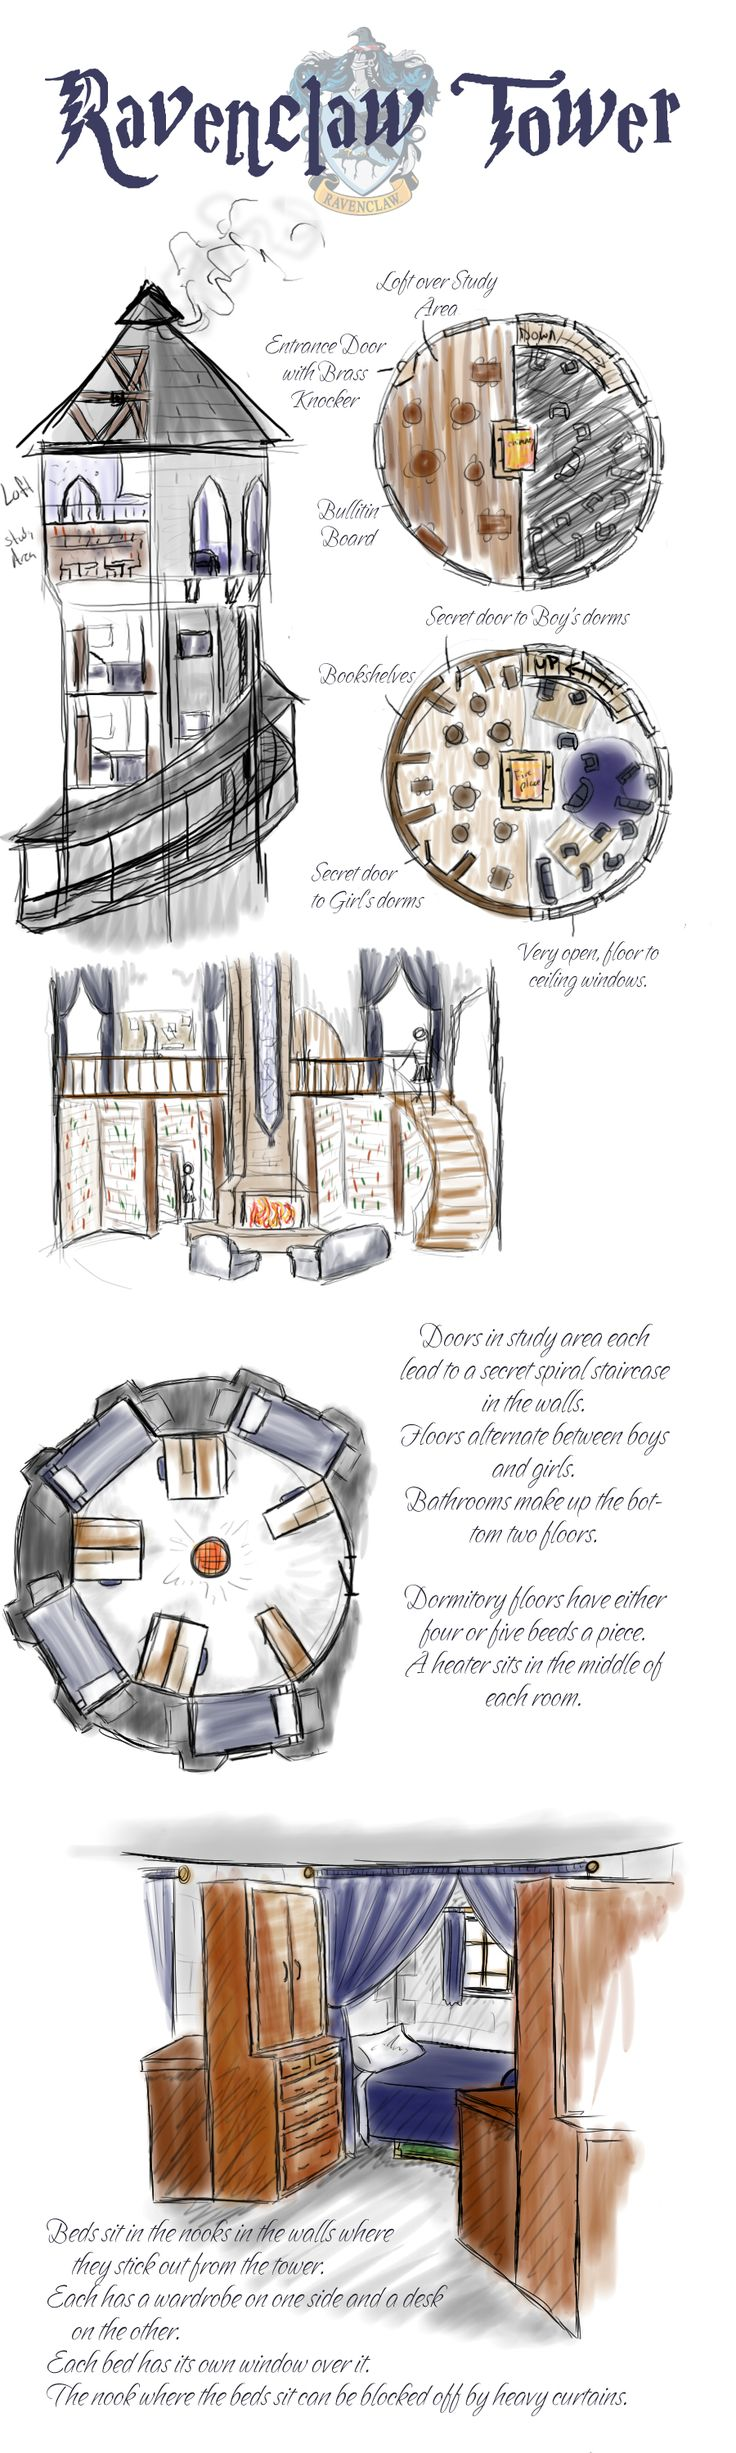 Ravenclaw Tower. Wow. Certainly wouldn't mind staying in there for school.